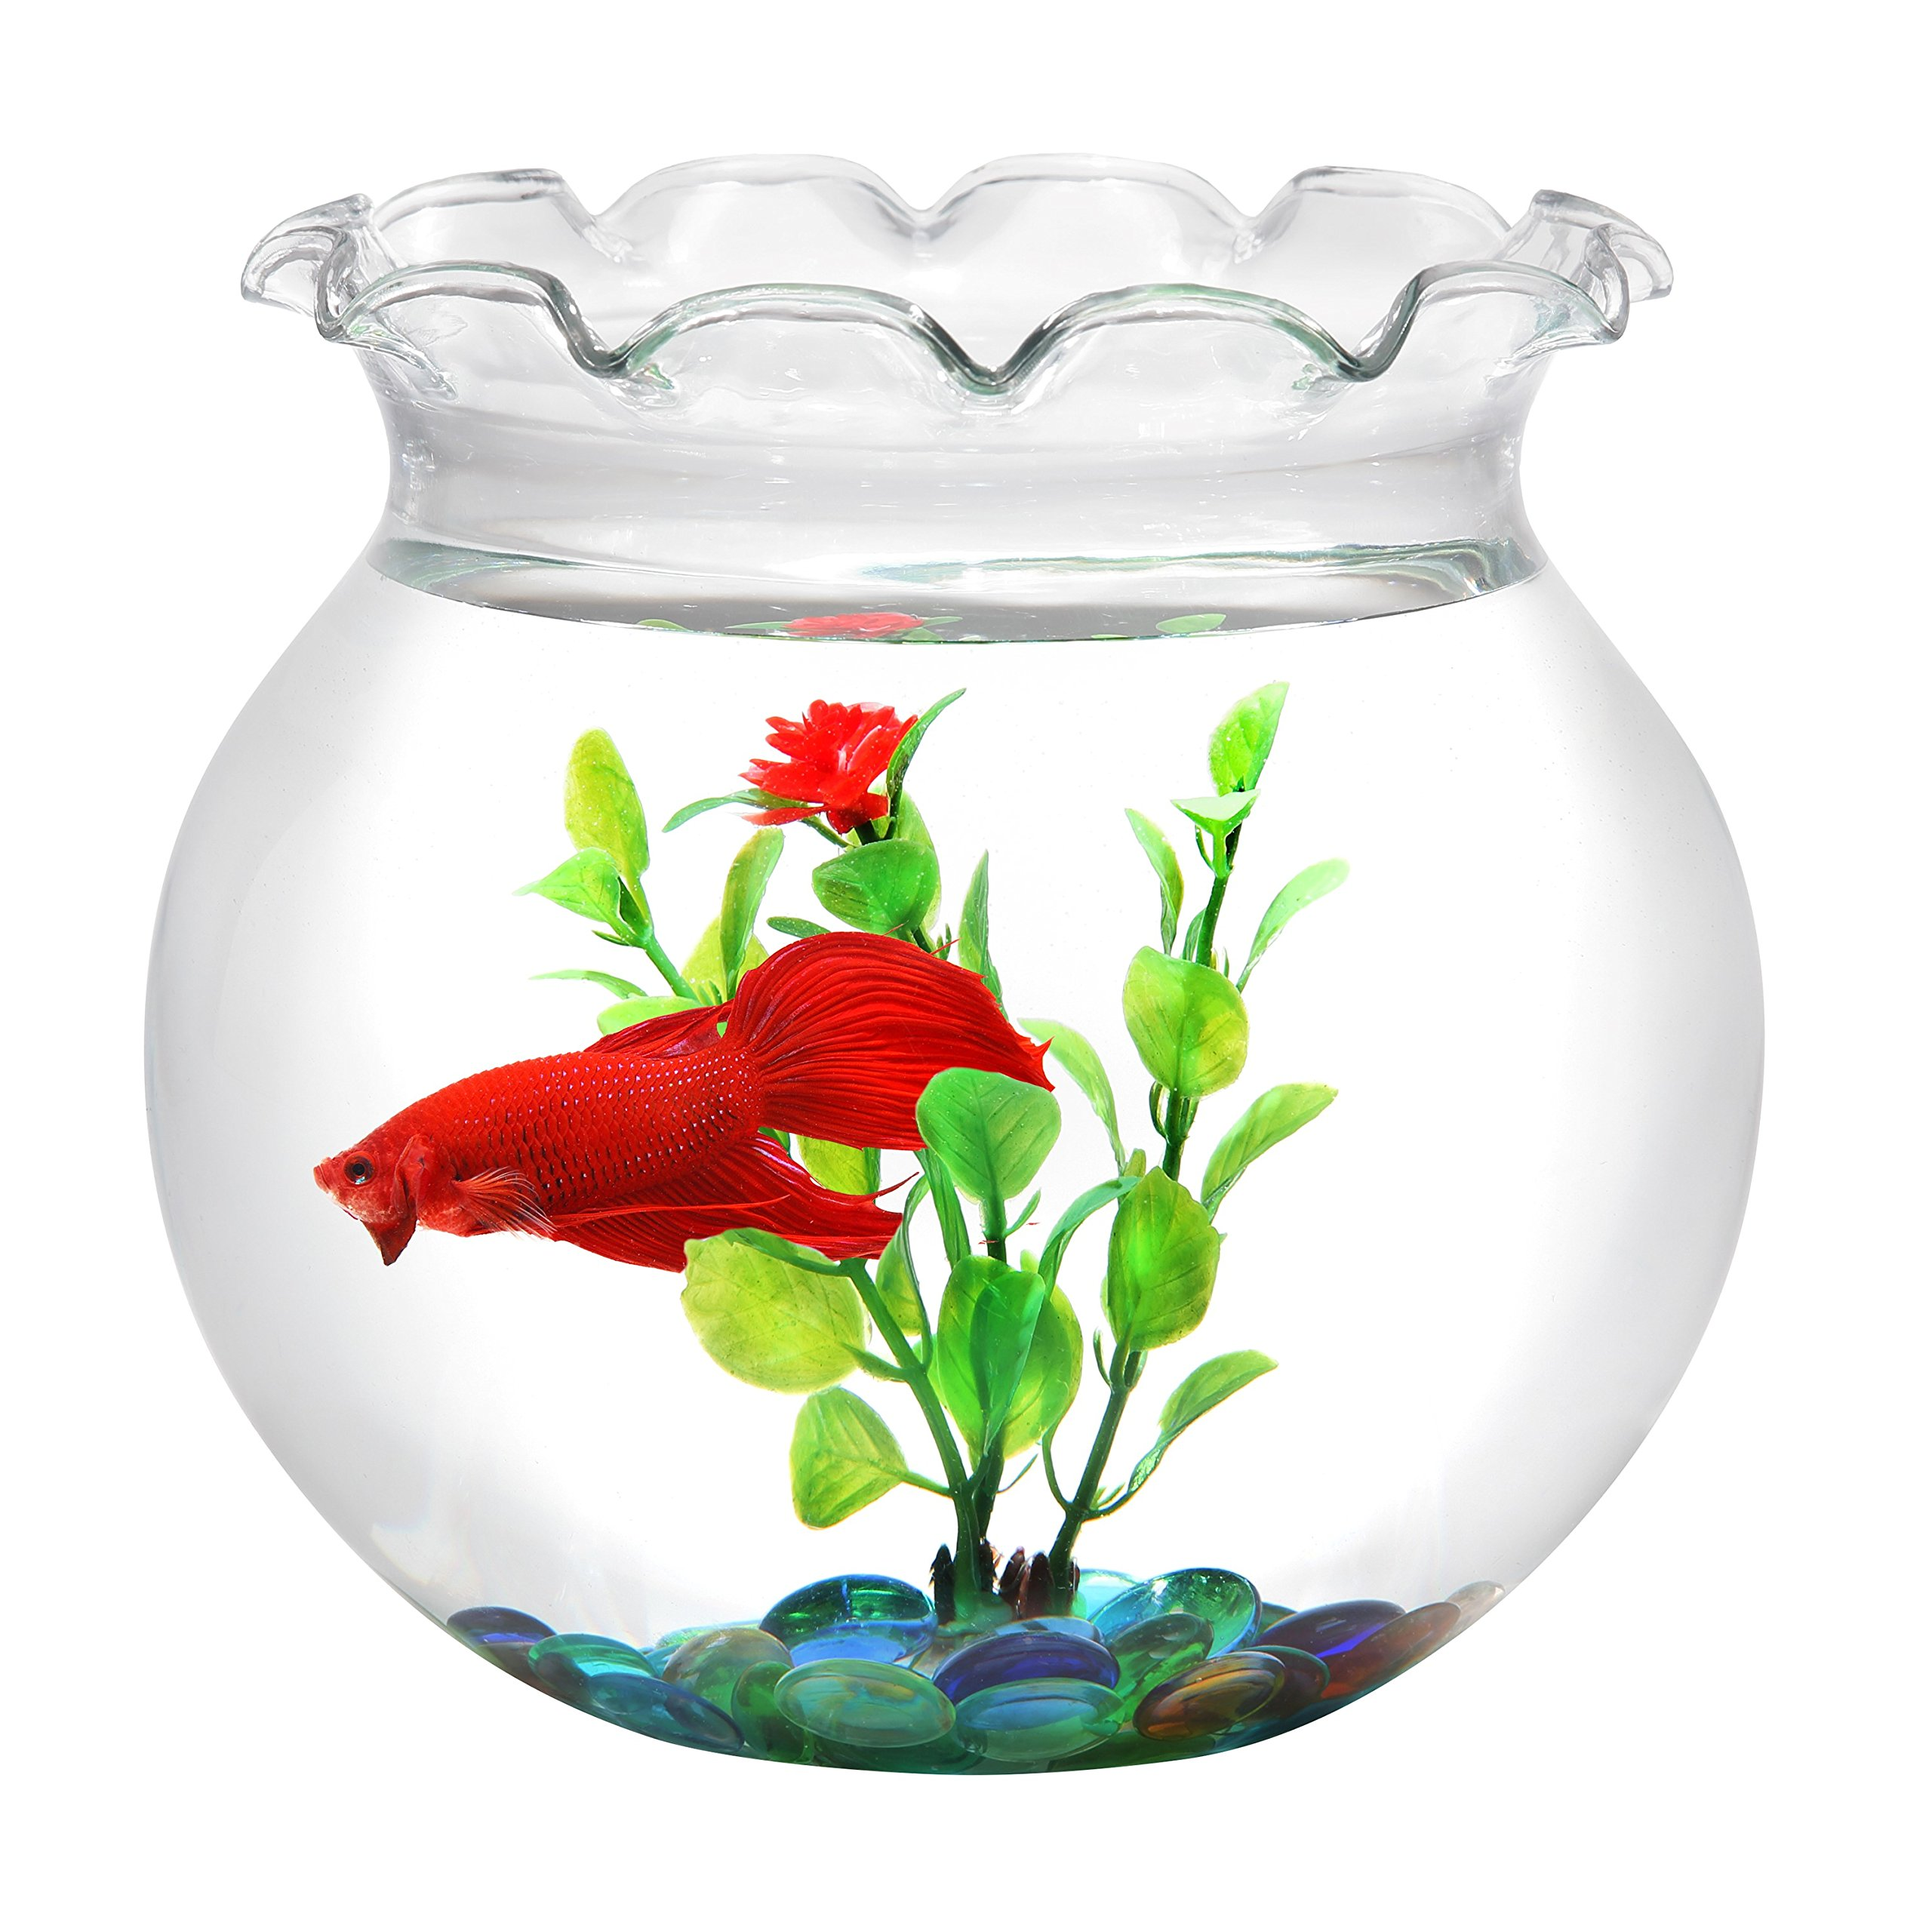 Koller Products BettaTank 1-Gallon Scalloped Fish Bowl with Marbles and Plastic Plant.